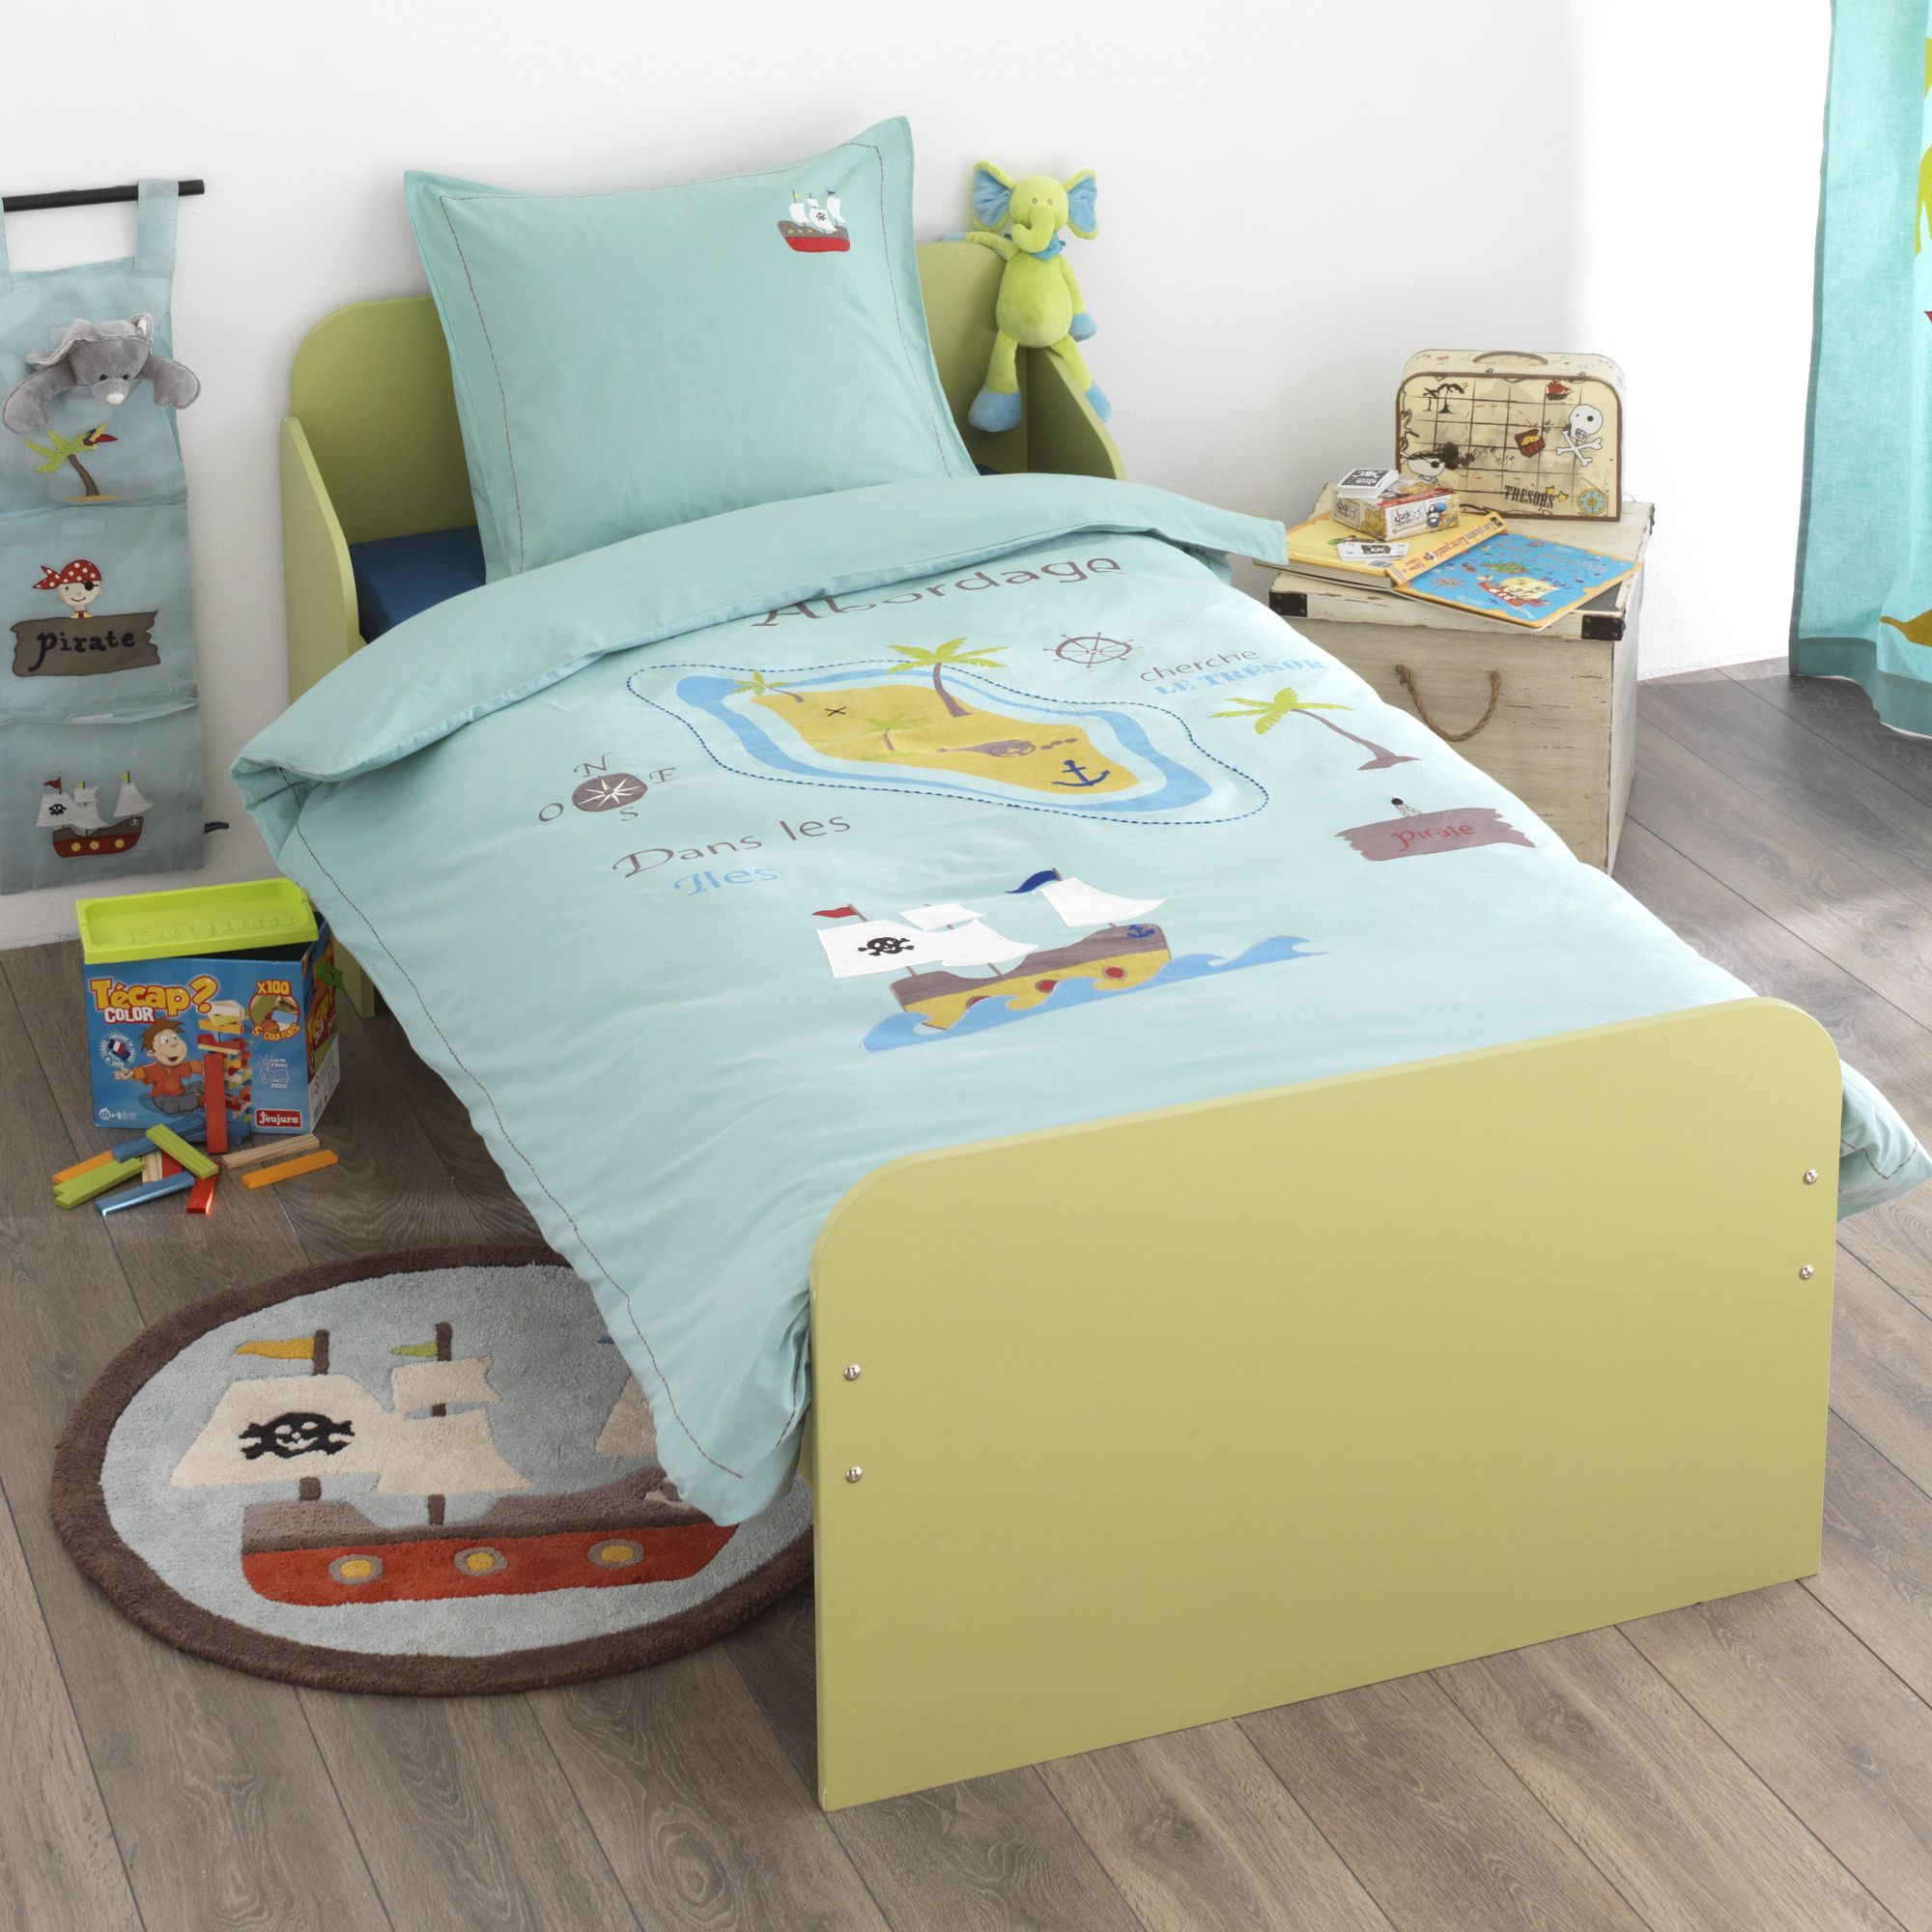 parure de couette pour enfant bleu pirate les parures. Black Bedroom Furniture Sets. Home Design Ideas